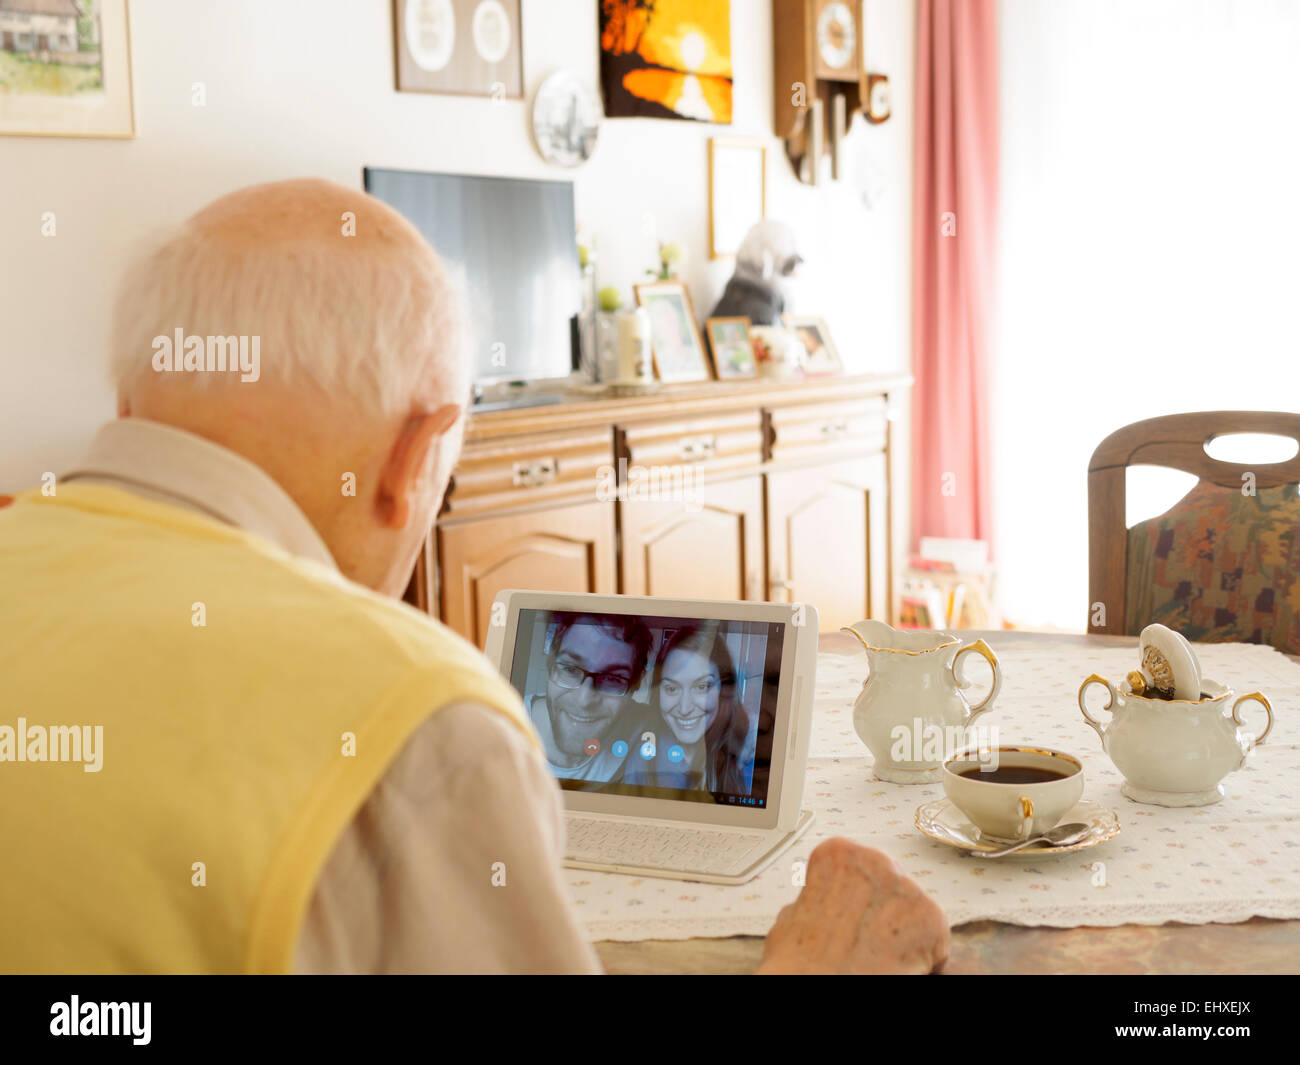 Grandfather videoconferencing with grandchildren via digital tablet - Stock Image